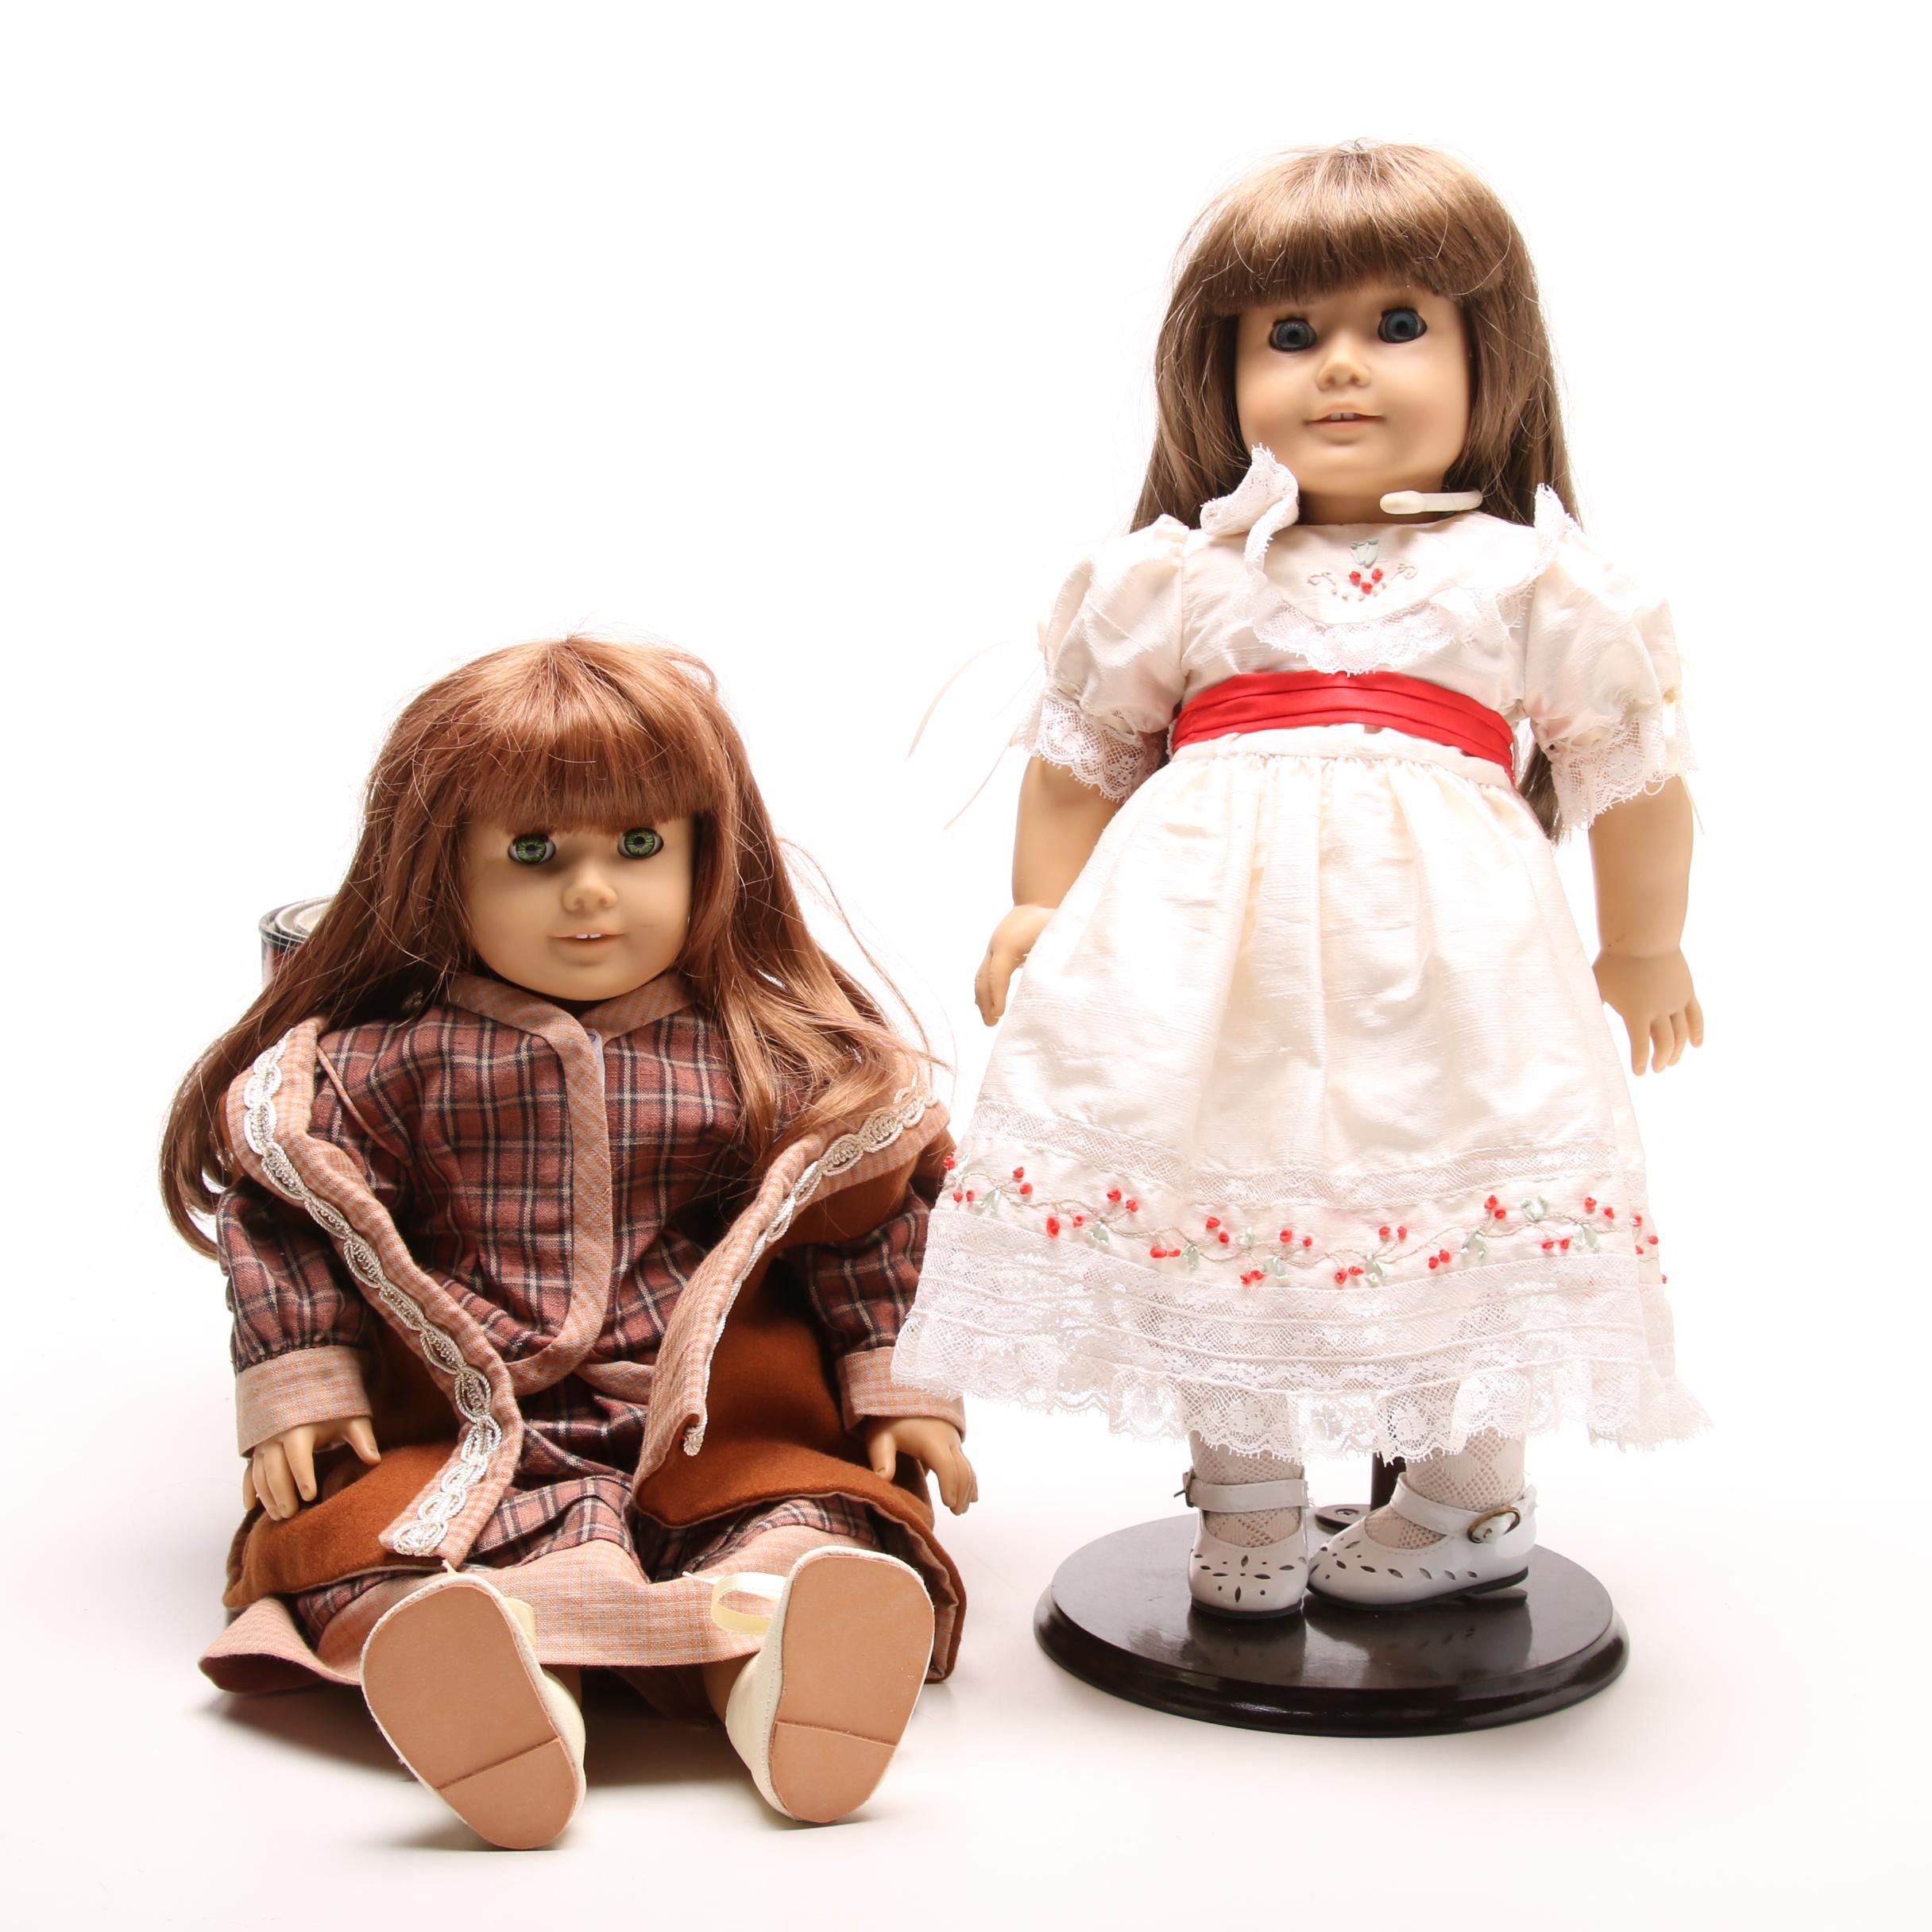 """Mid-1990s American Girl """"Just Like Me"""" Dolls"""